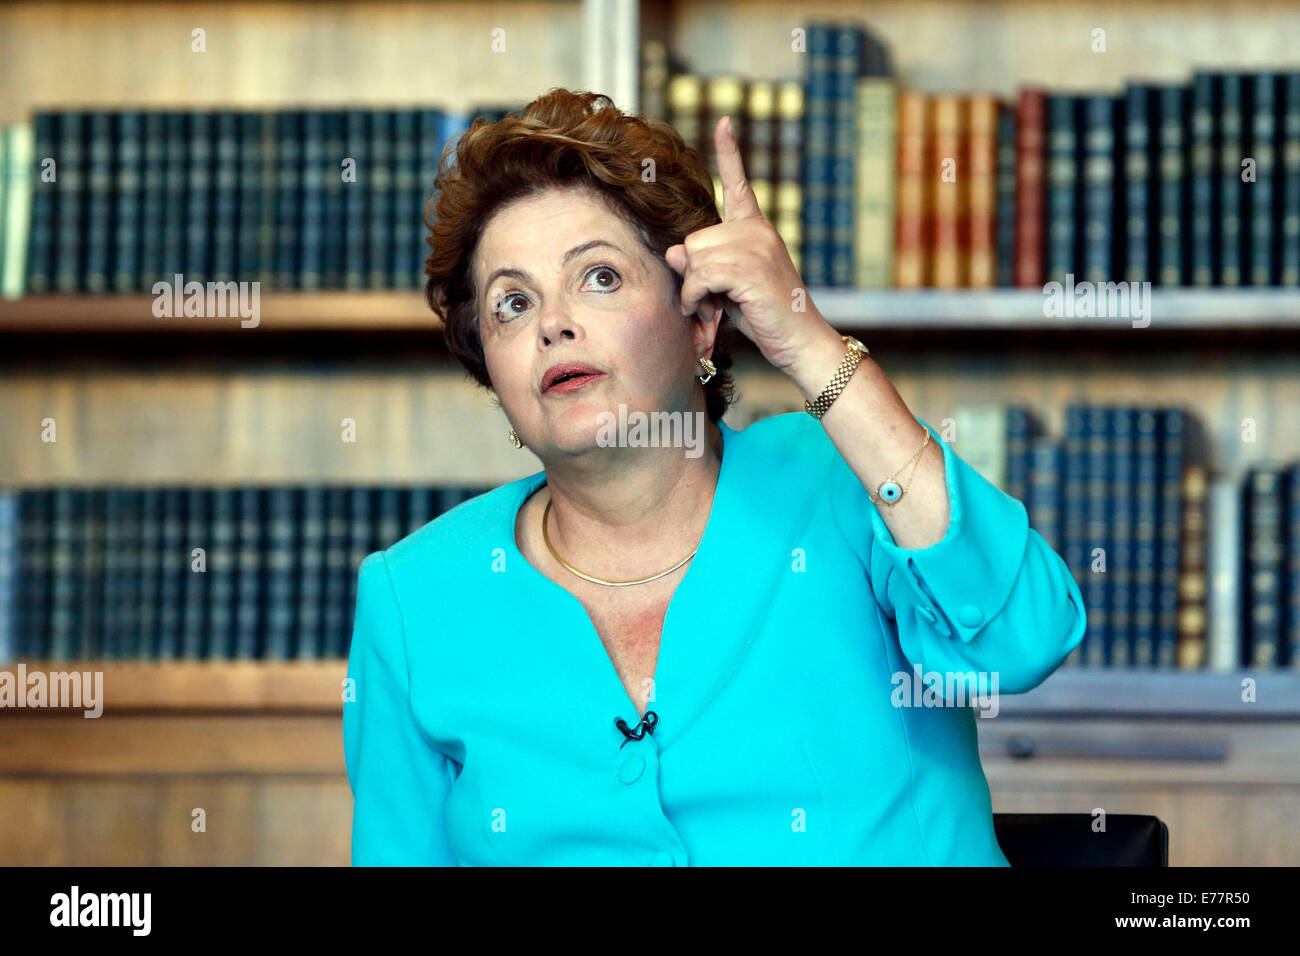 Another mature woman from brasilia